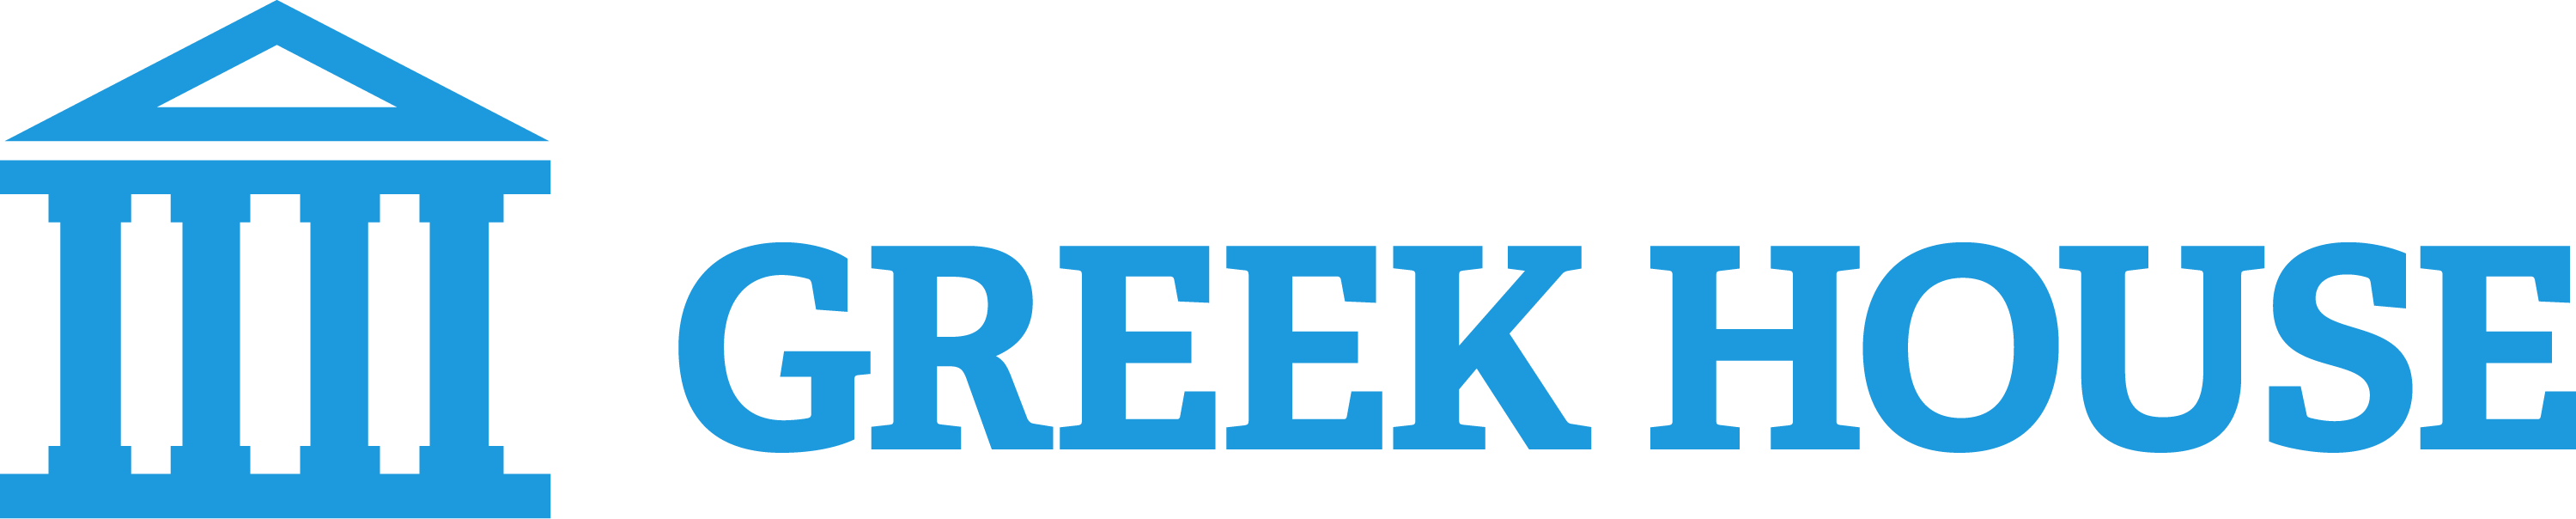 GreekHouse_Logo_2020_Horizontal_Lockup_Blue